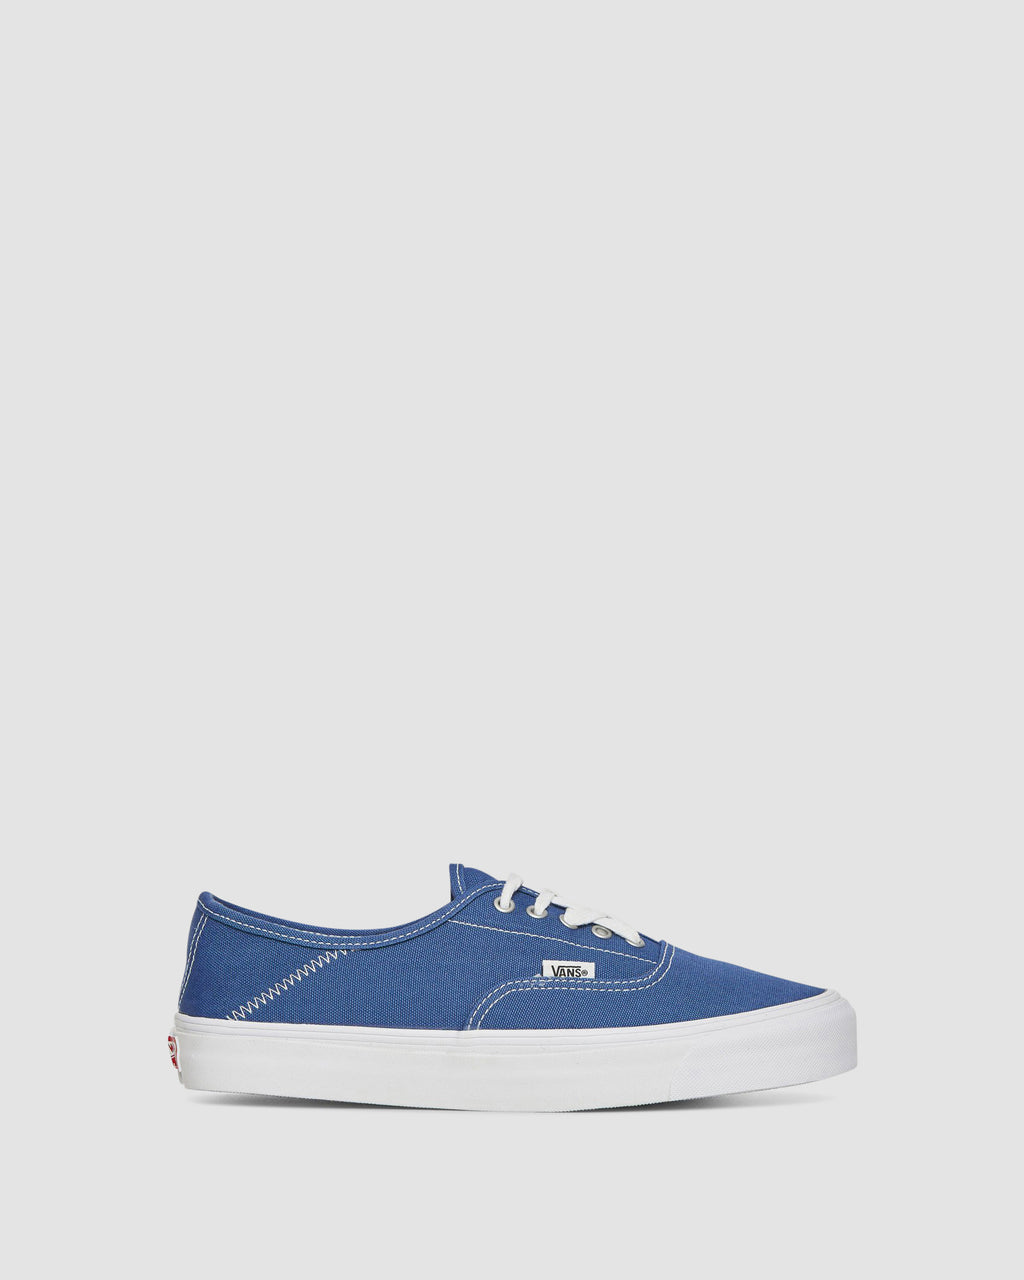 VANS OG STYLE 43 AUTHENTIC FOLD DOWN NAVY